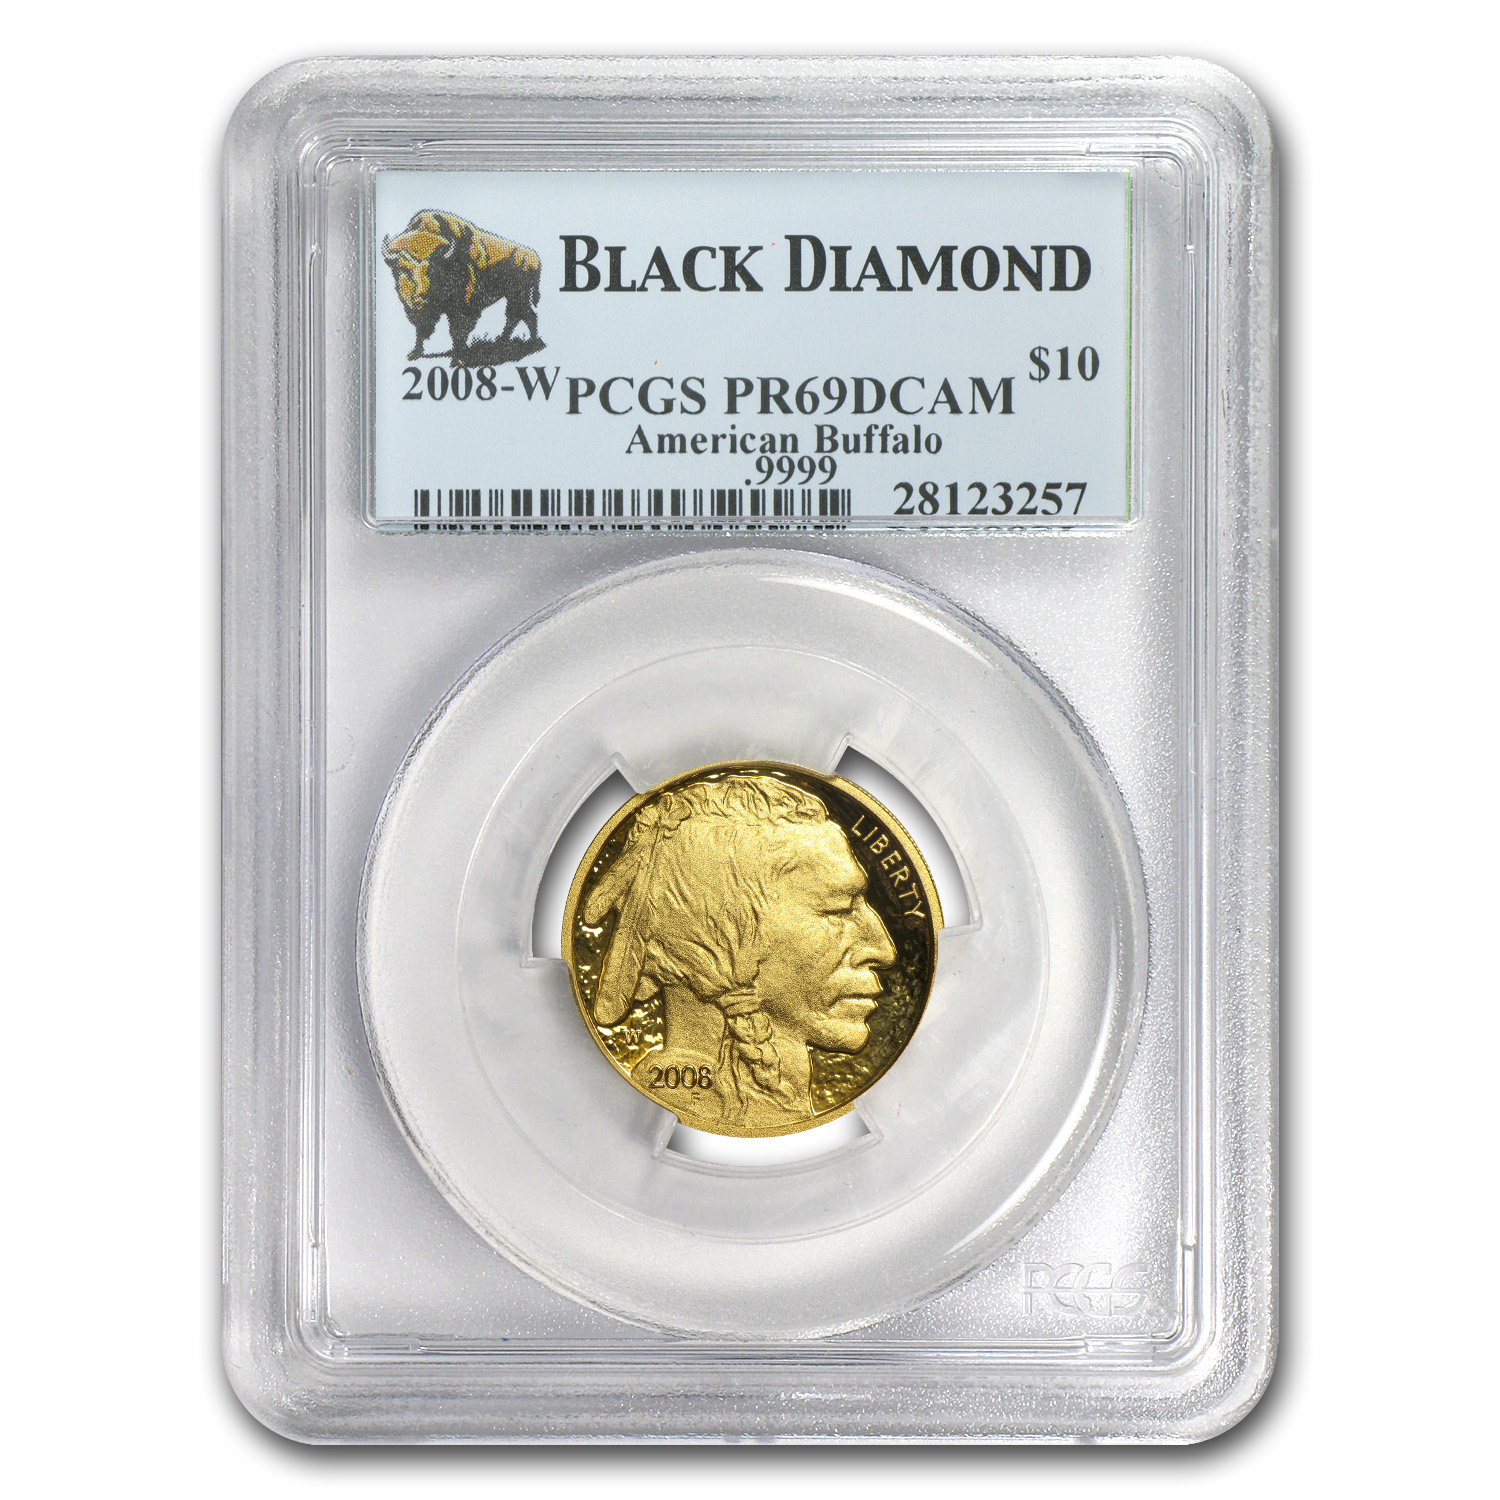 2008-W 1/4 oz Proof Gold Buffalo PR-69 PCGS (Black Diamond)